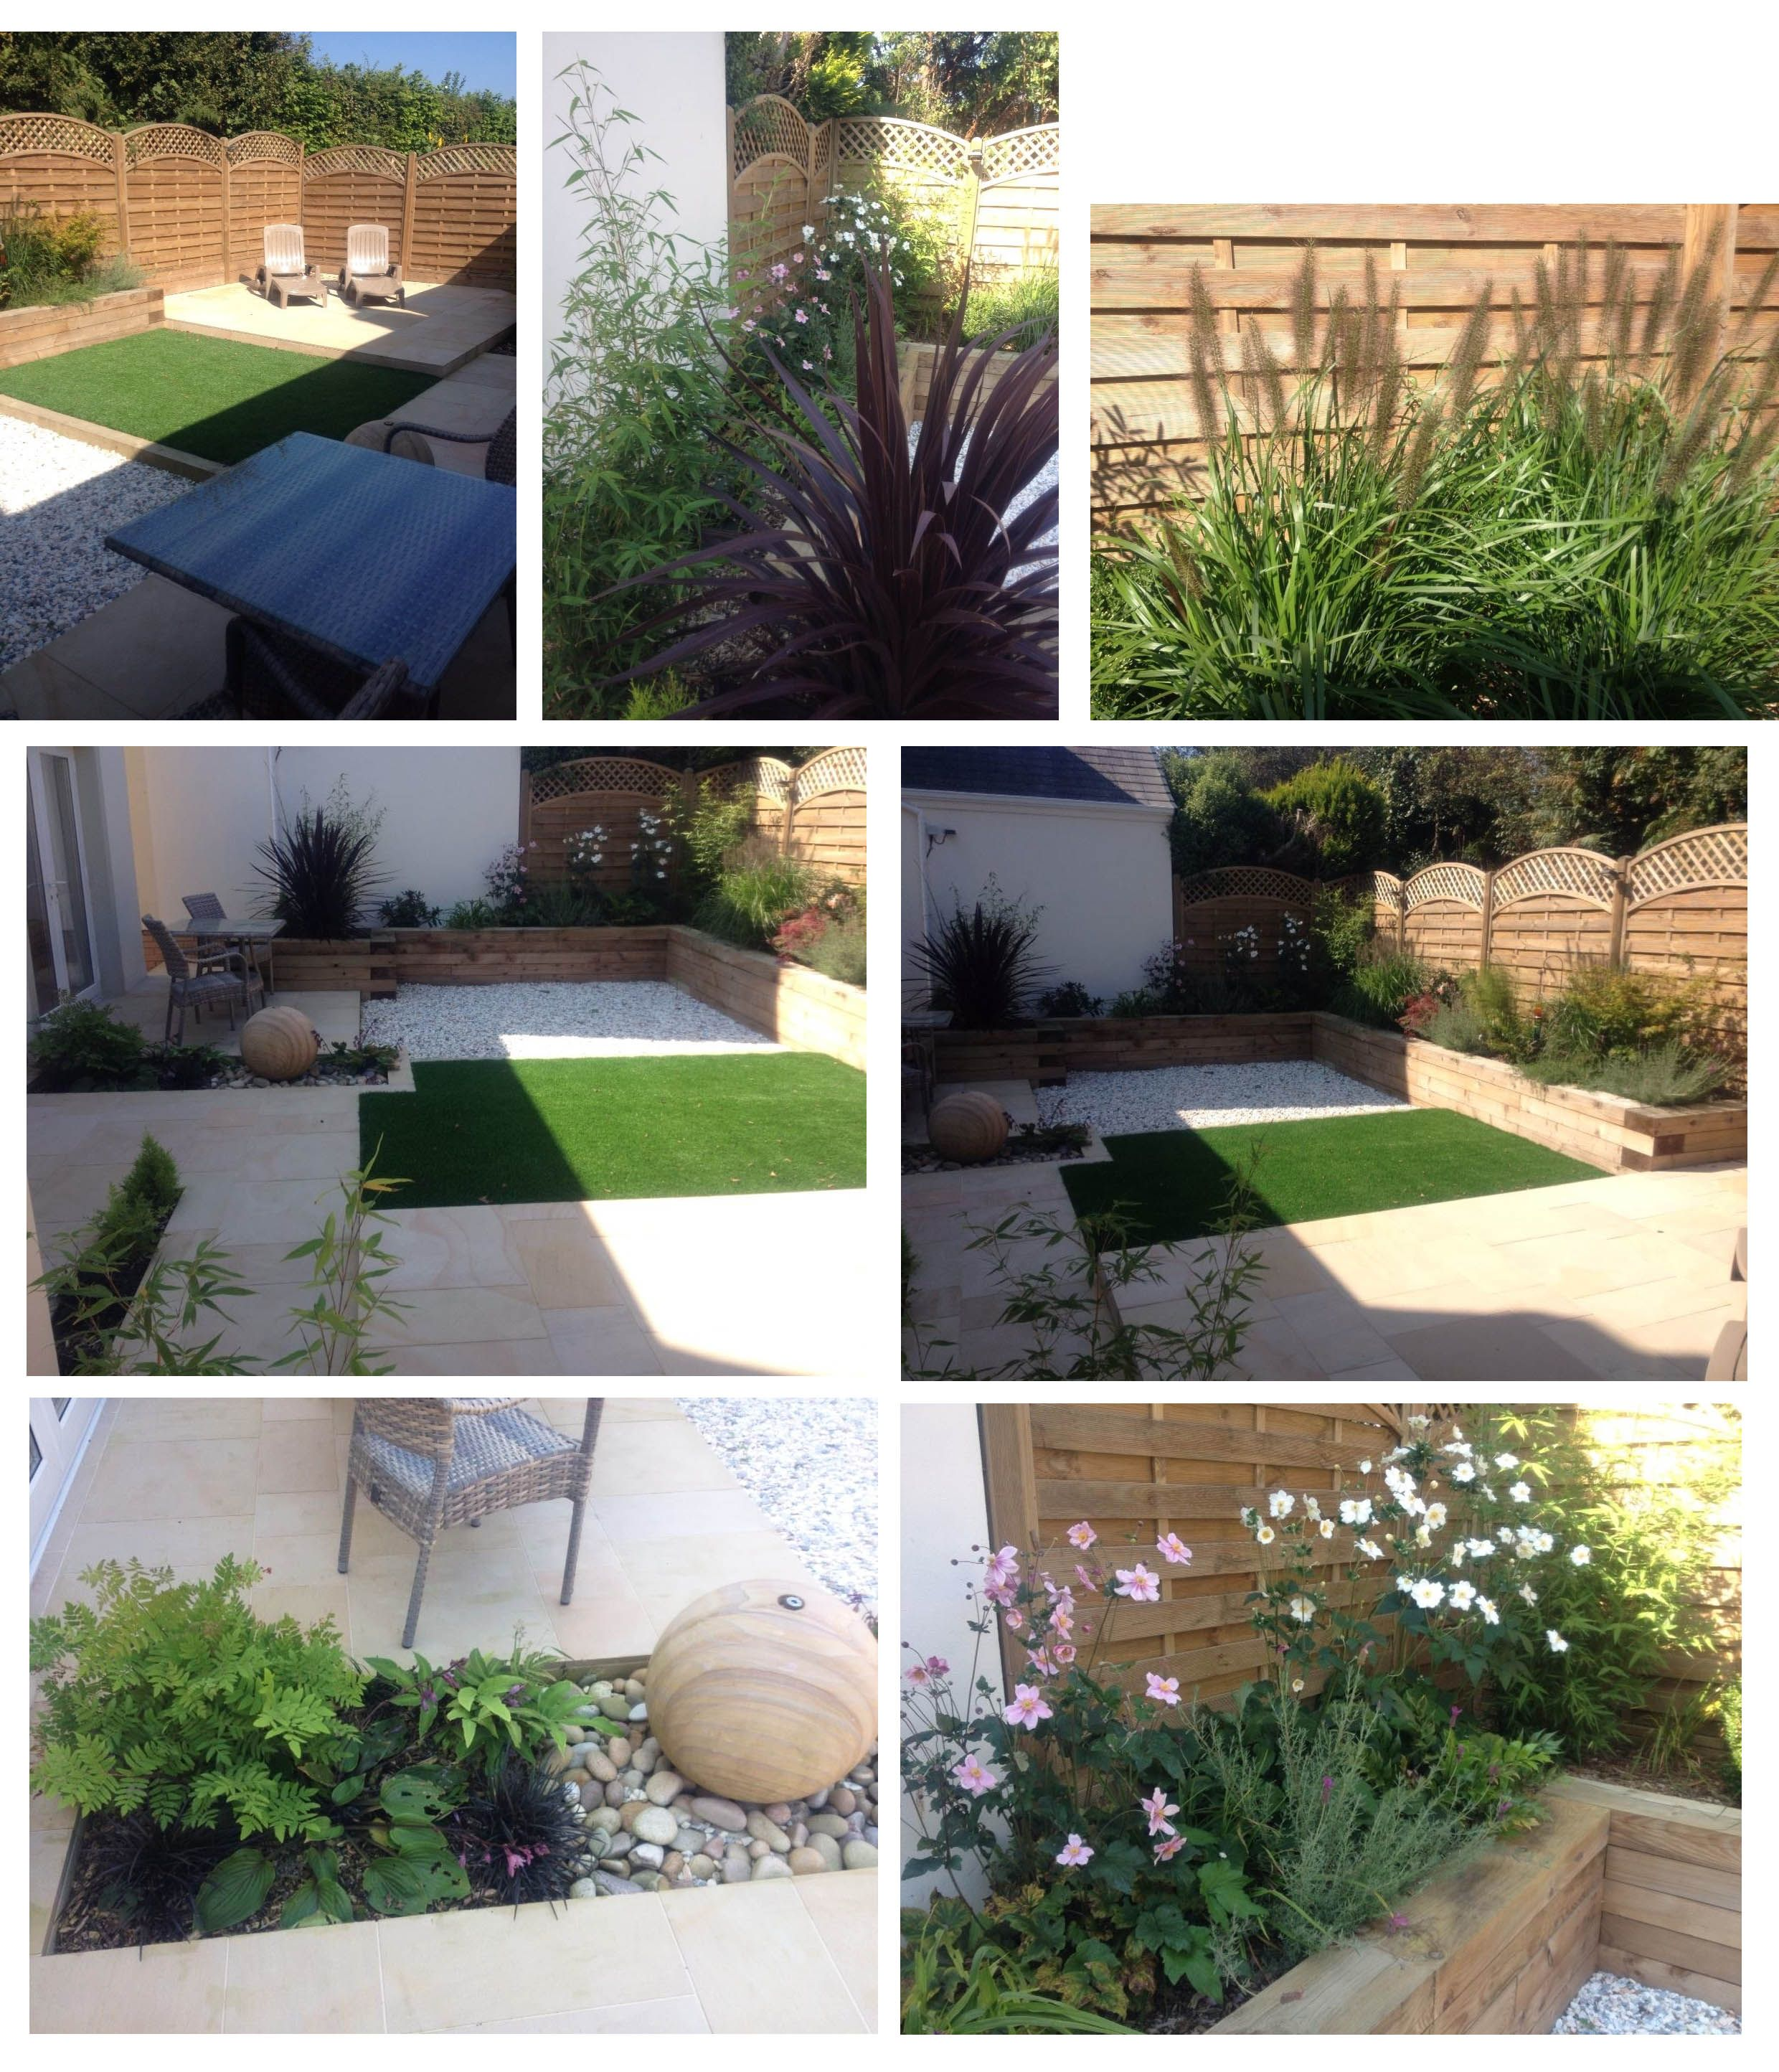 contemporary garden design and build jersey ci katiemcarthur mcarthurlandscapes gardendesign - Garden Design Jersey